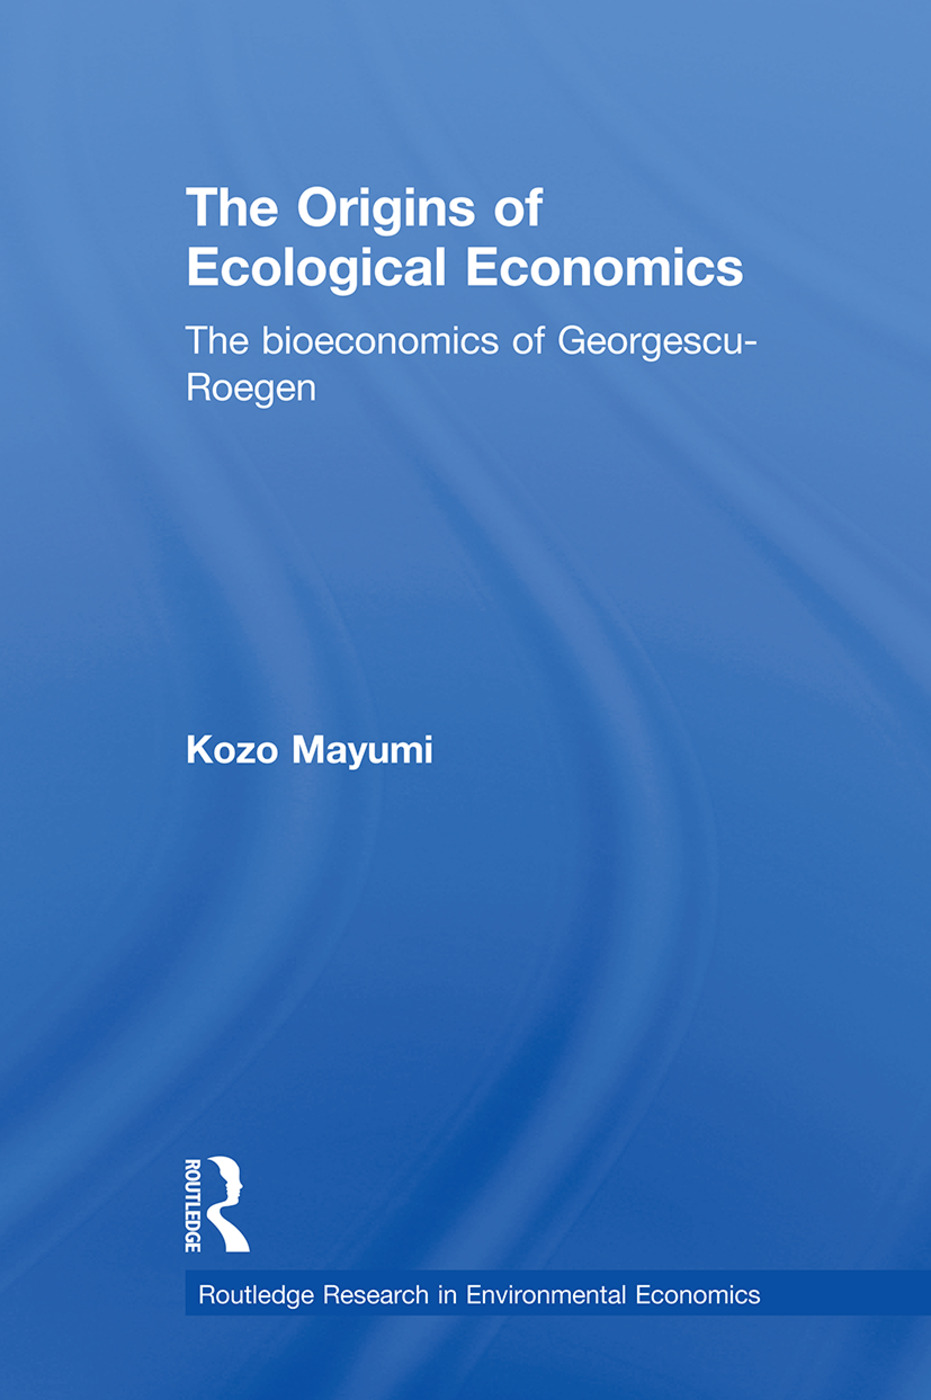 The Origins of Ecological Economics